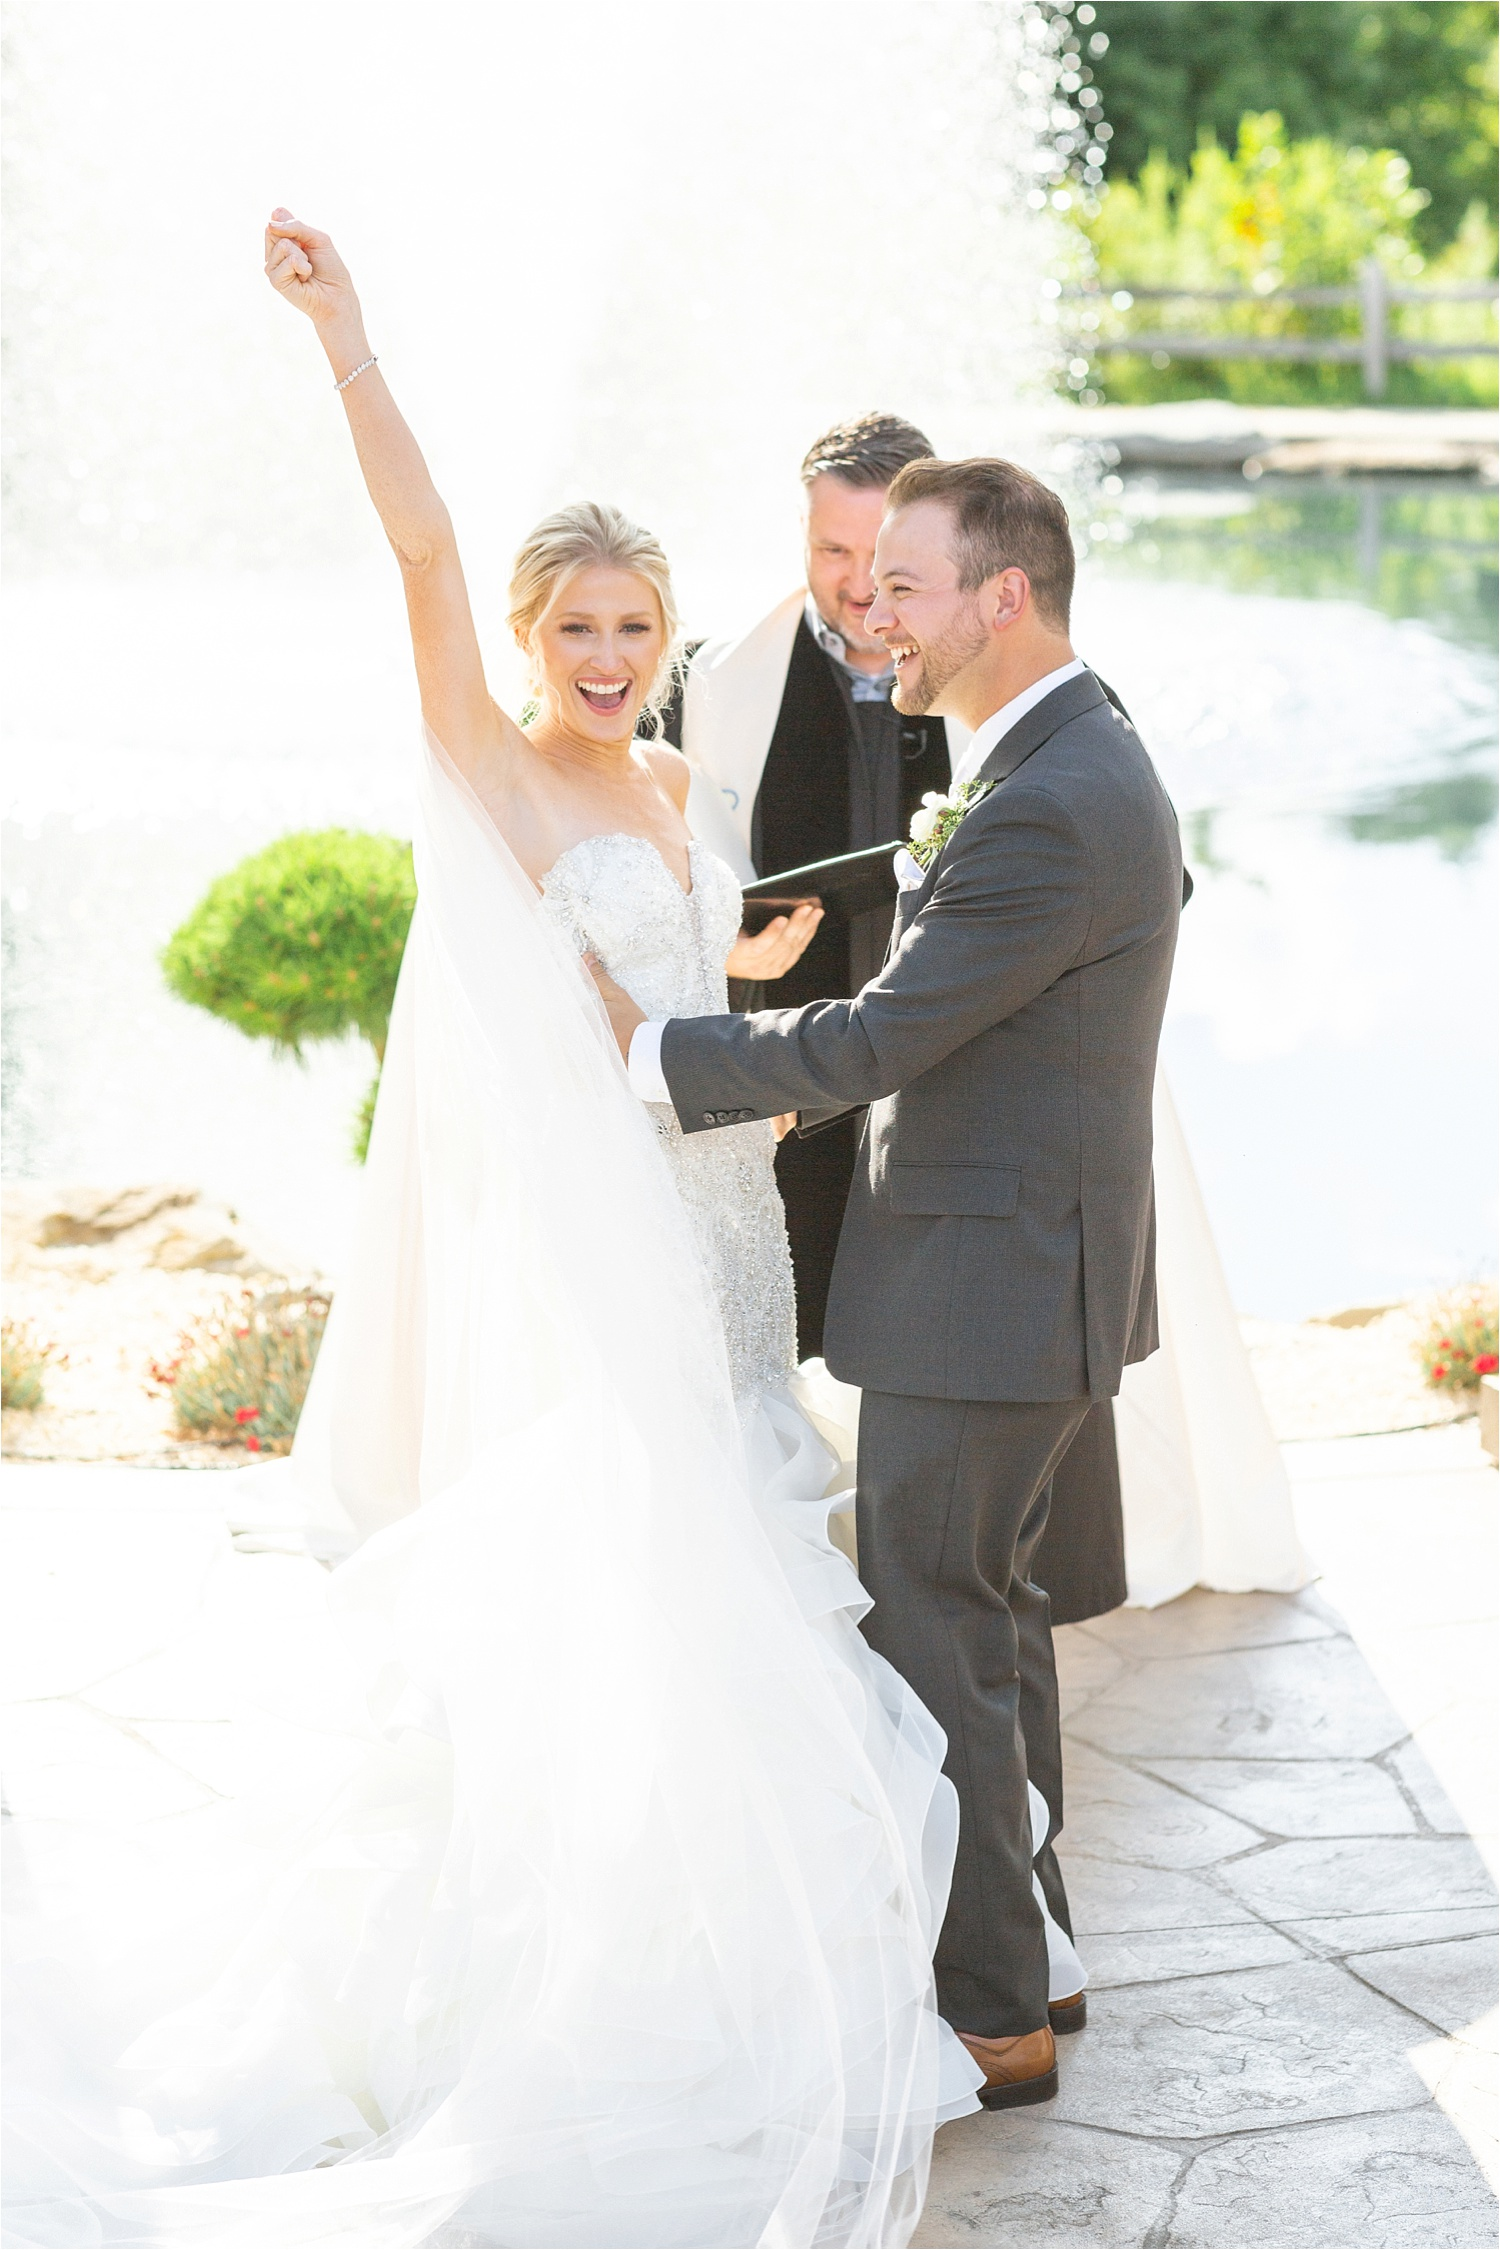 gorgeous sunny wedding ceremony just married celebration at blue heron brewery & event center